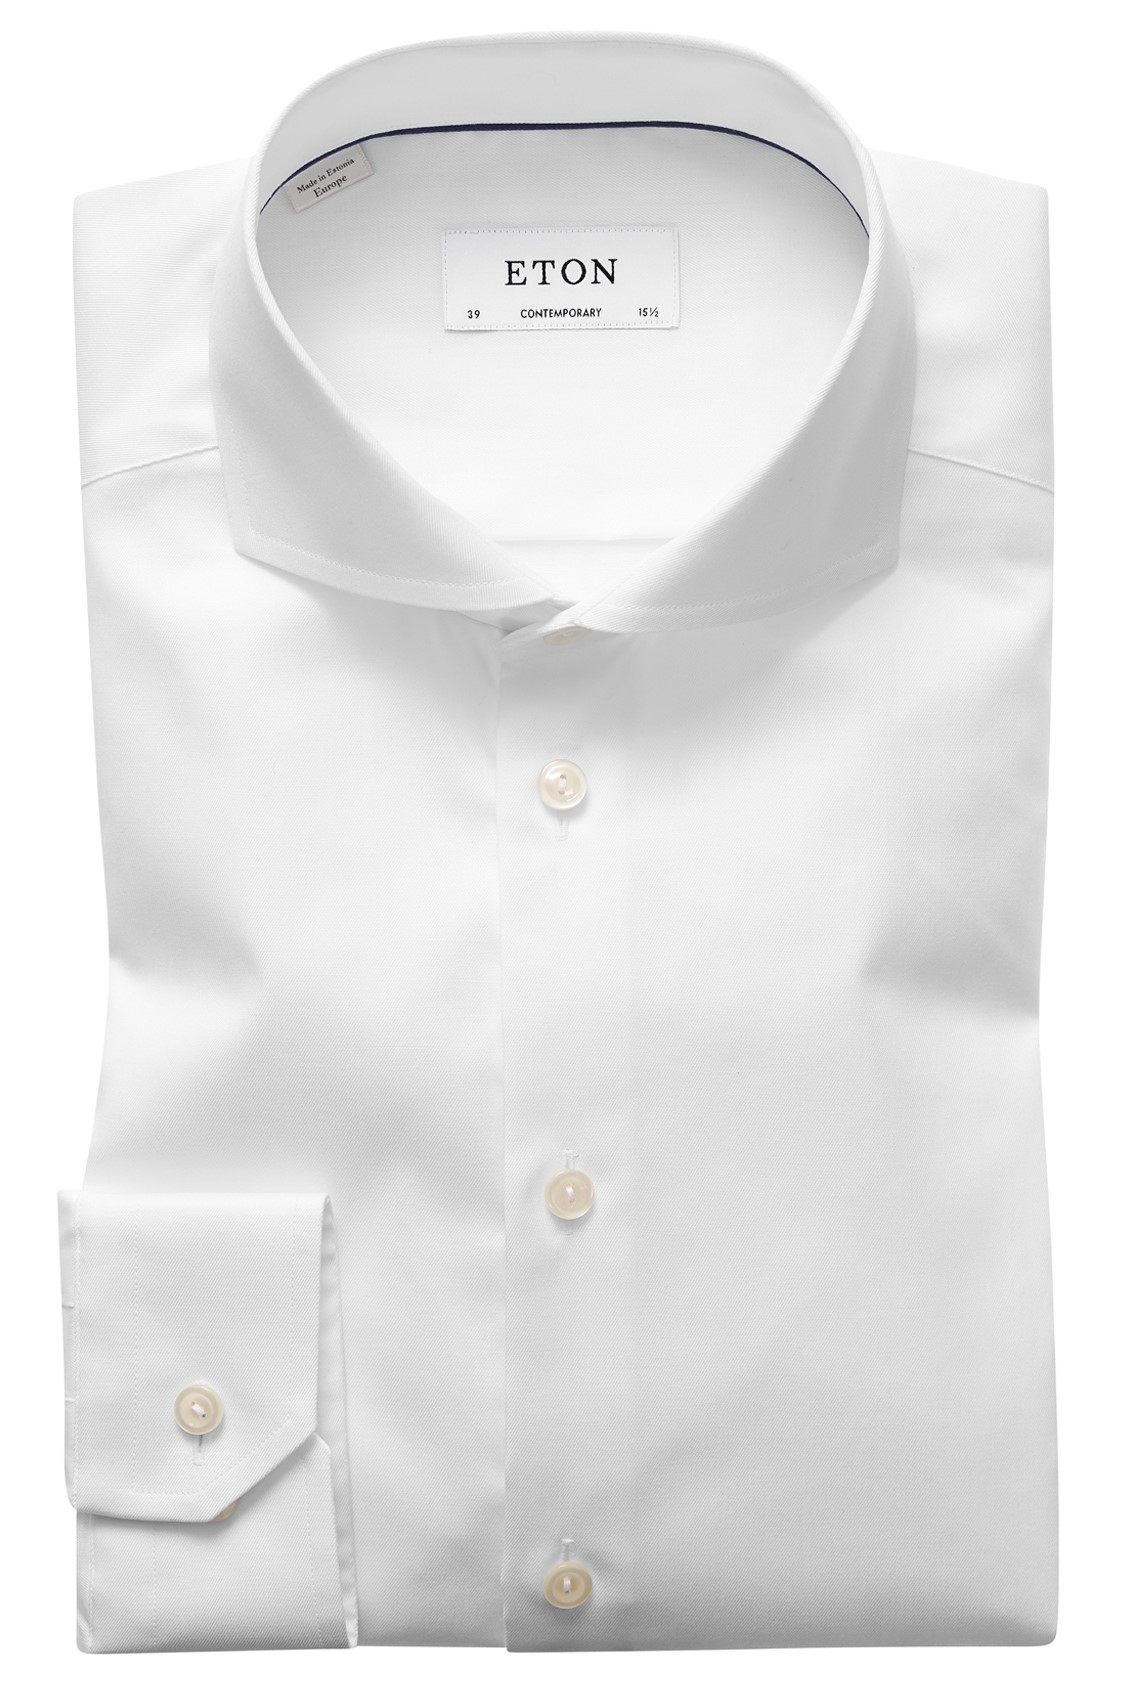 SALE Eton dress shirt white Contemporary